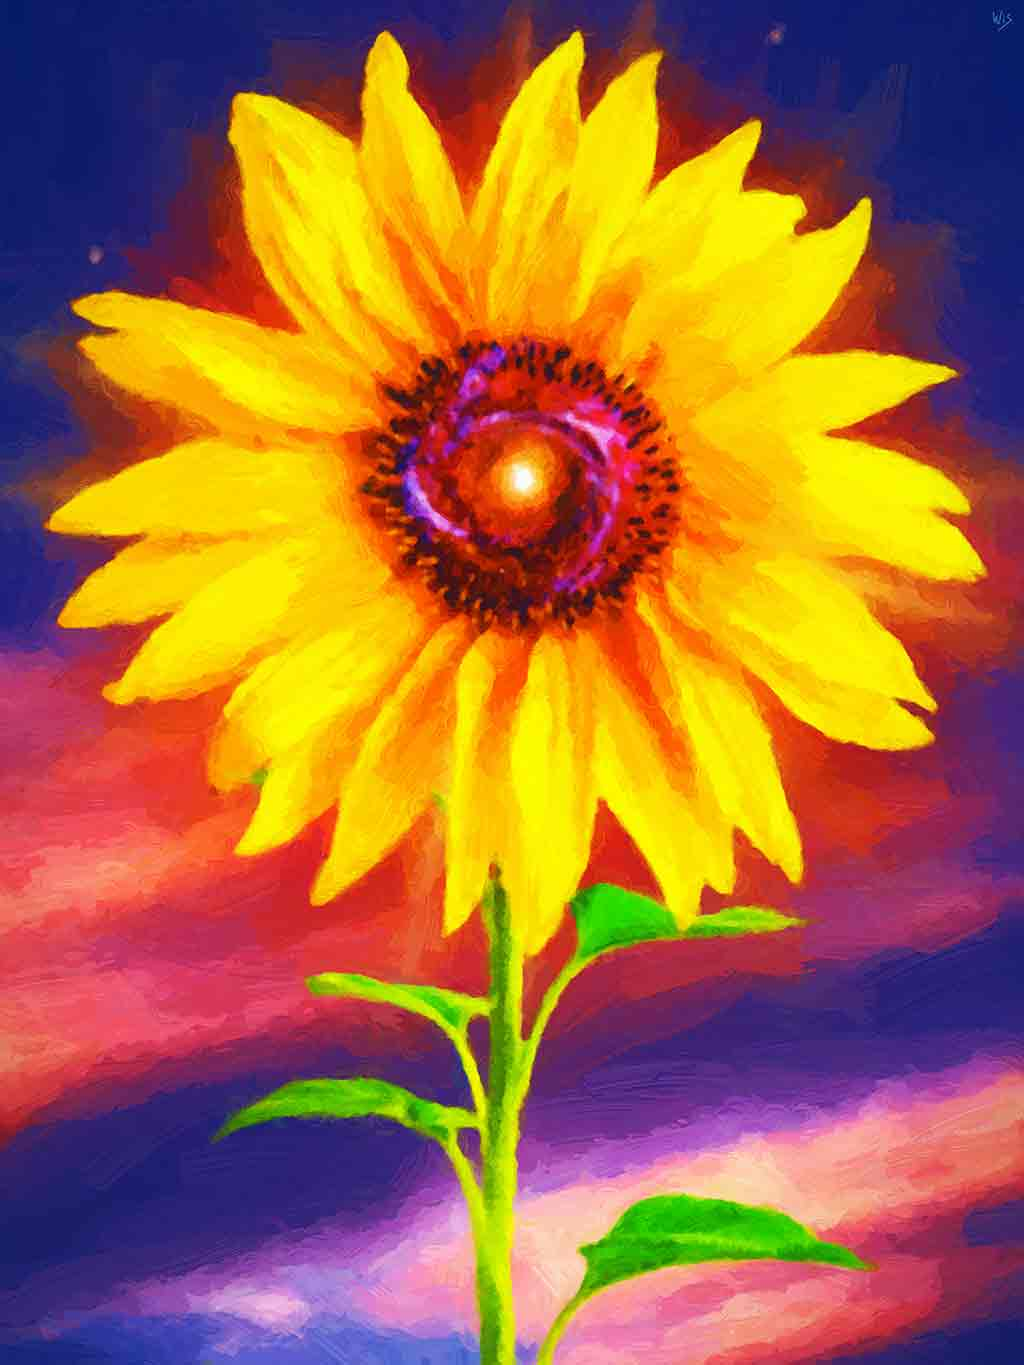 Sunflower Galactic  in landscape in a digital oil painting on Art Canvas Print by Wieslaw Sadurski